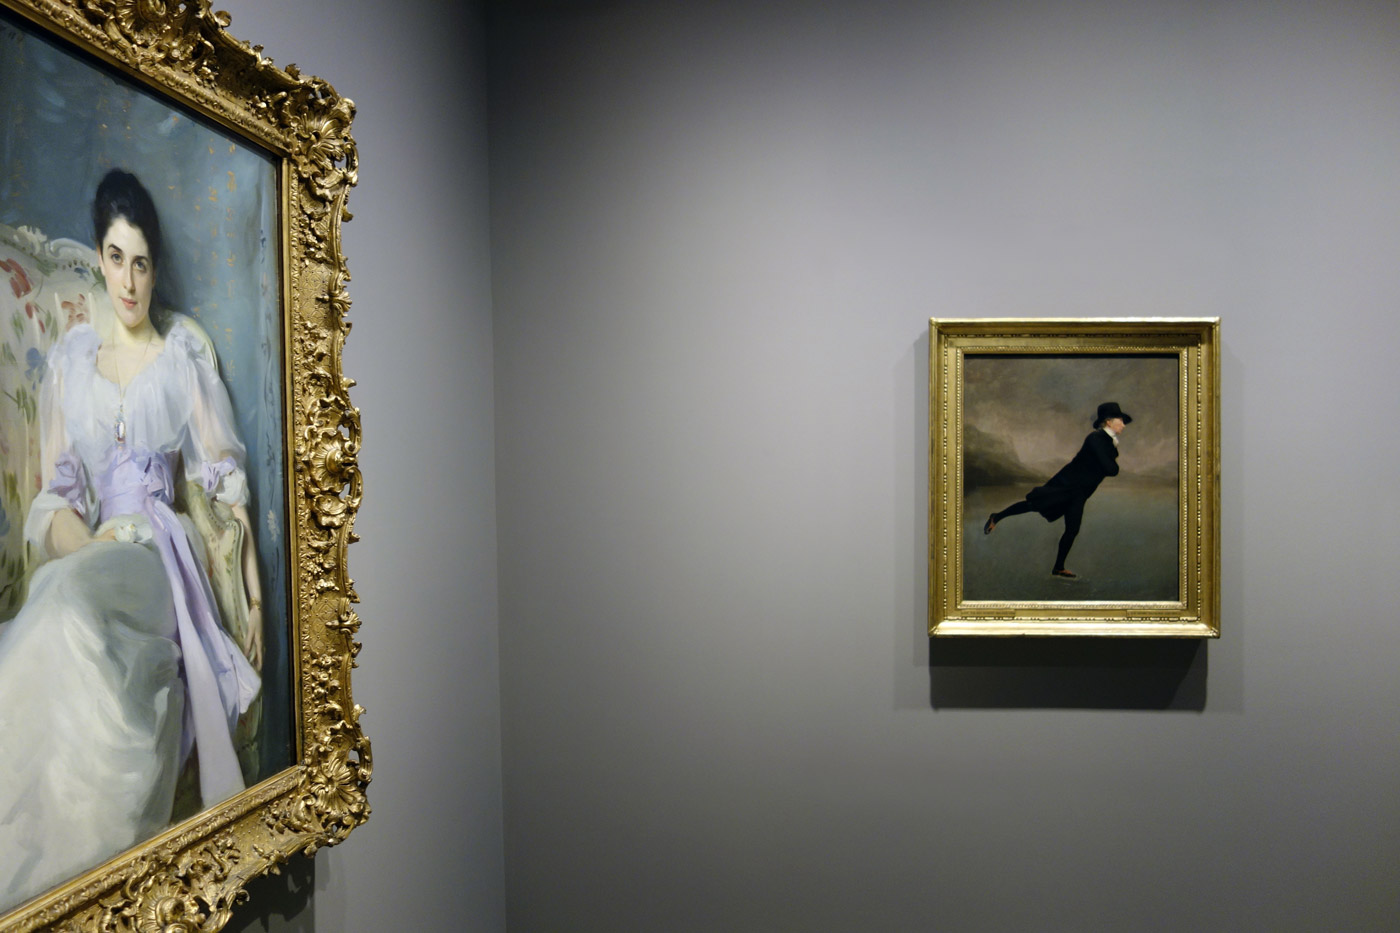 Installation view of the exhibition 'The Greats: Masterpieces from the National  Galleries of Scotland